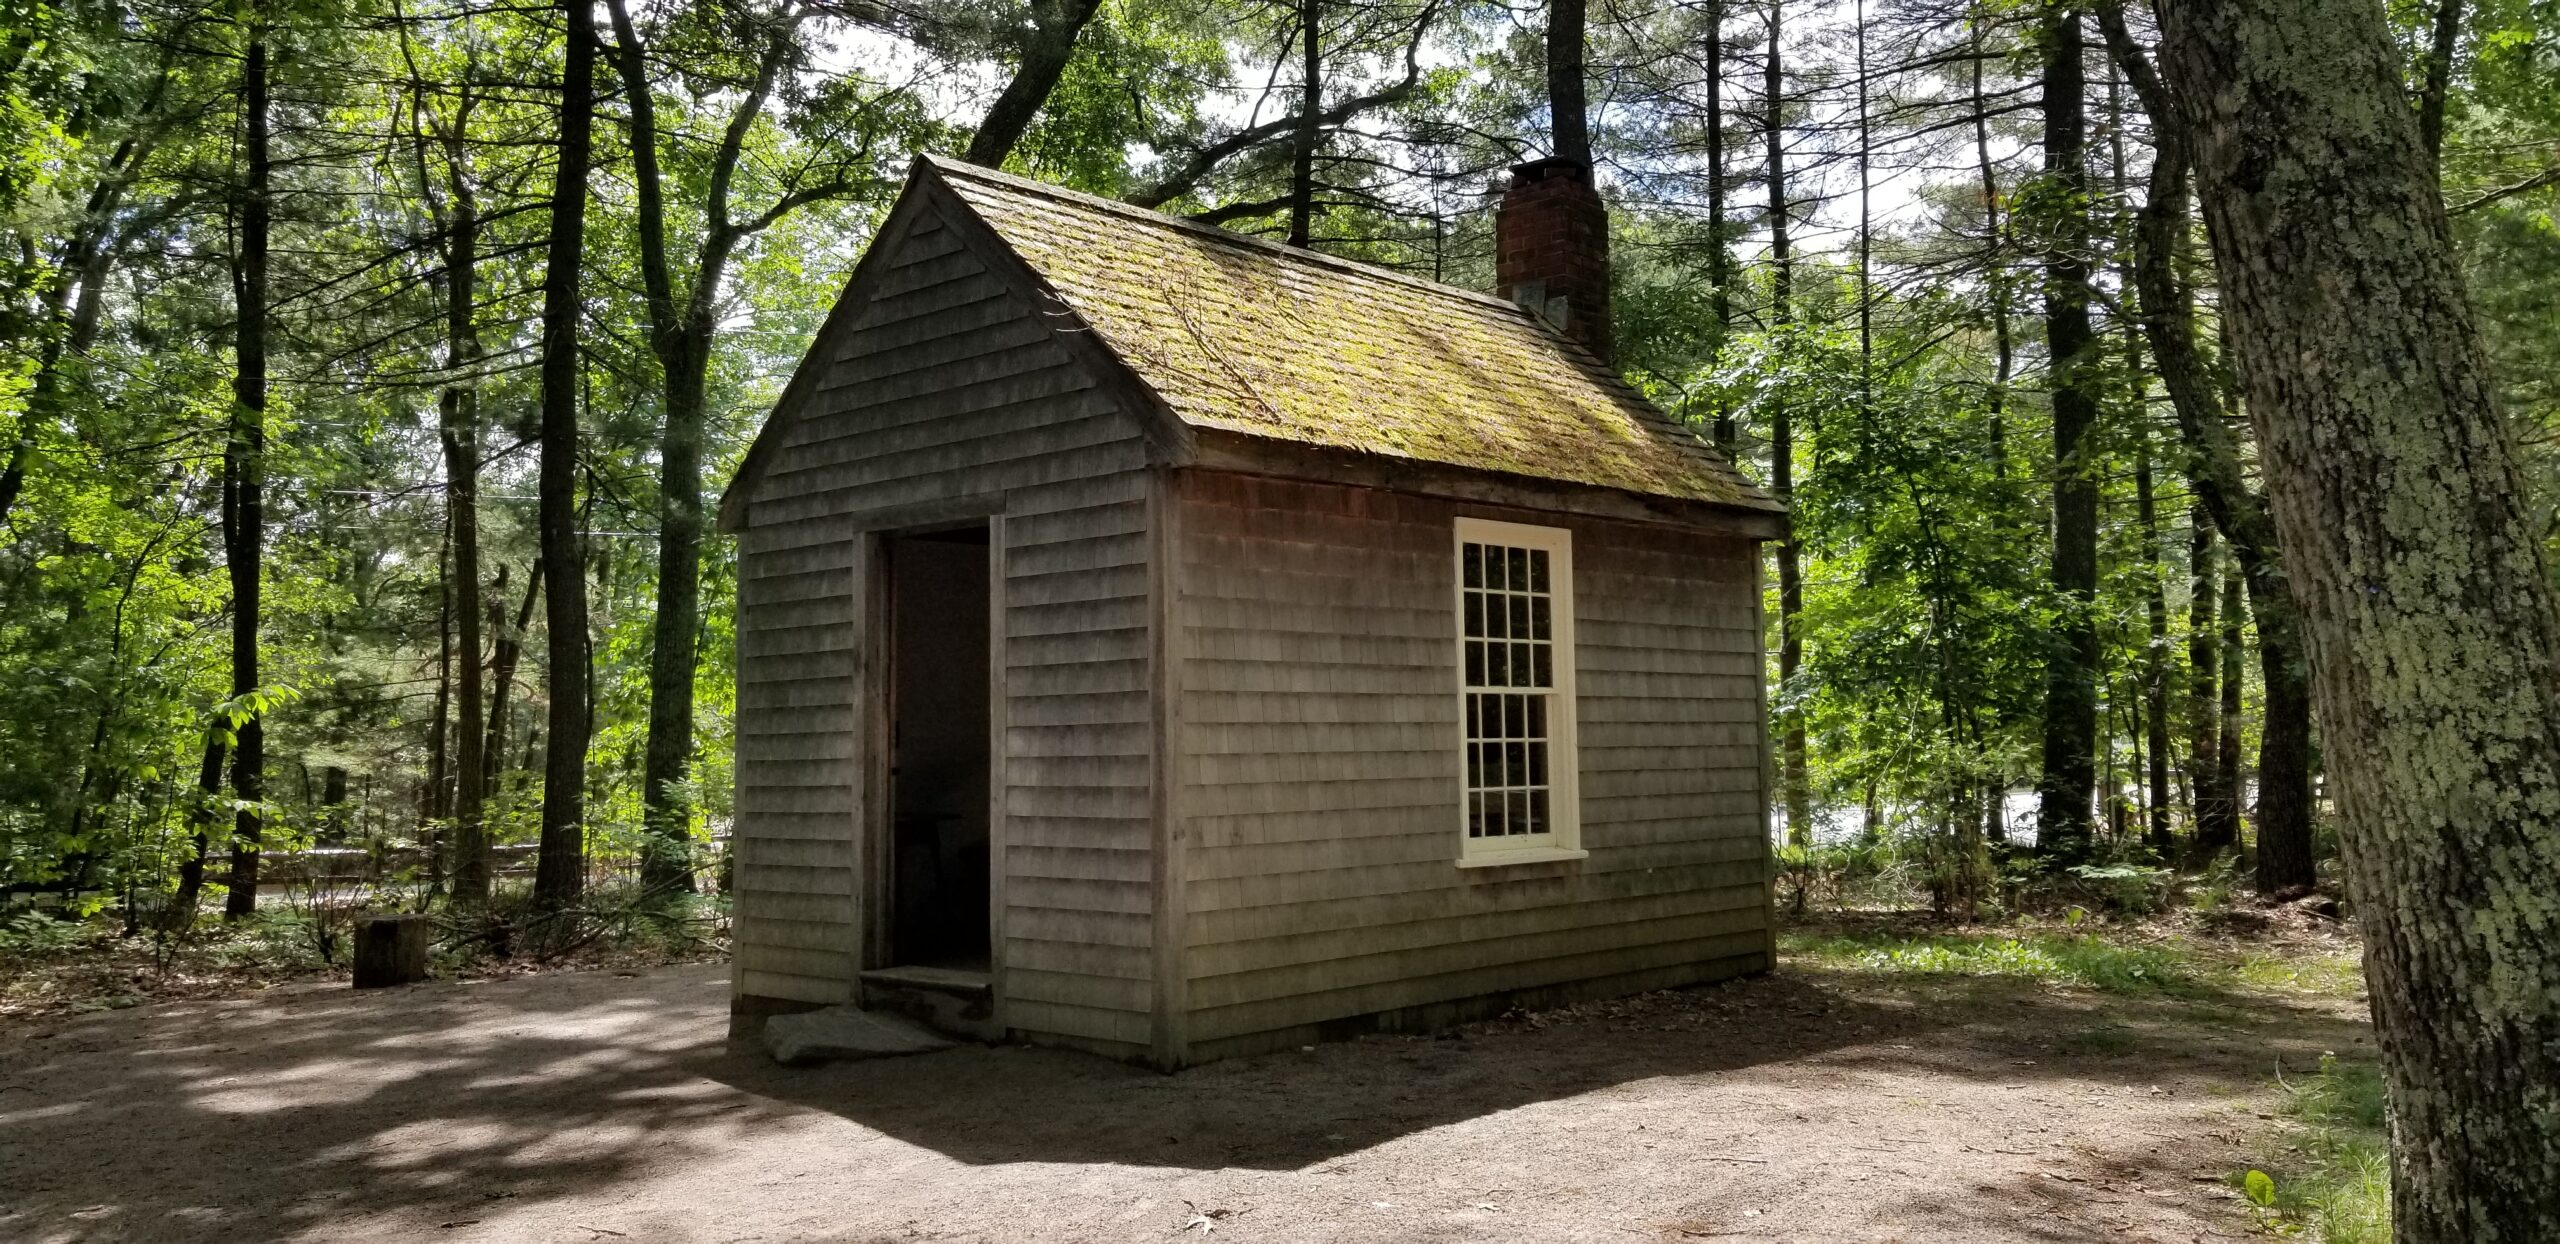 The re-created cabin of Henry David Thoreau at Walden Pond.